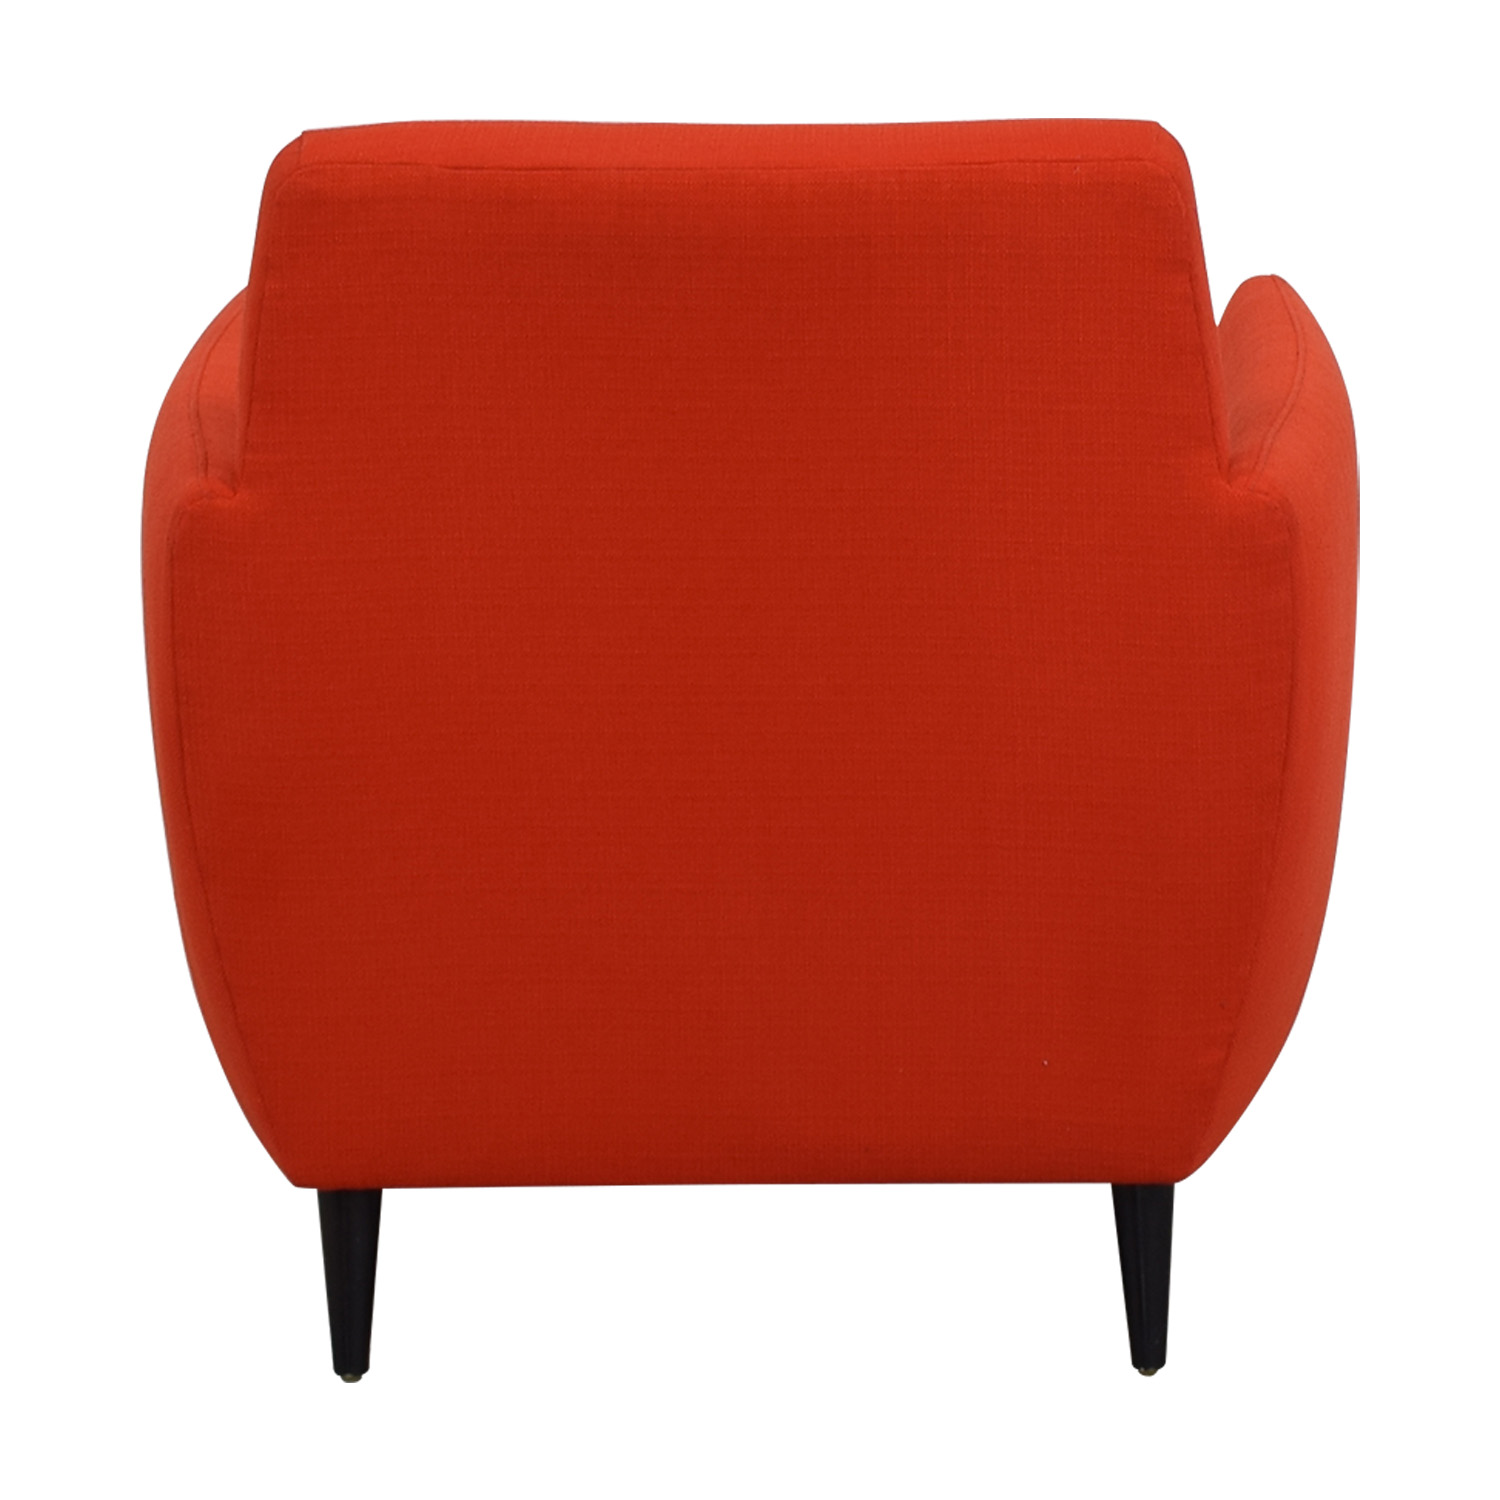 CB2 Orange Red Parlour Chair sale